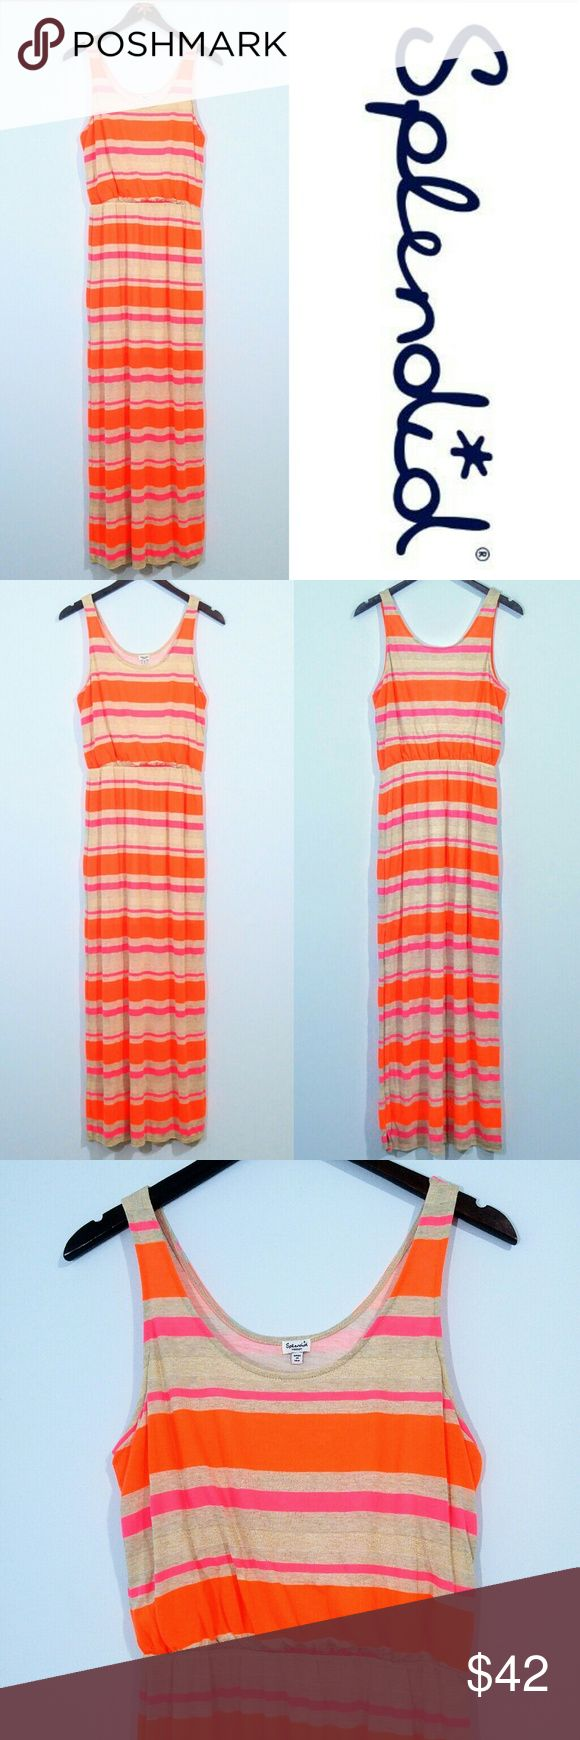 "Splendid Bright Striped Maxi Dress size Medium Excellent pre-loved condition Splendid maxi dress with bold pink and orange stripes. Also has thin sparkly gold stripes woven in. Perfect for spring and summer!  Bust approx 36"" Length approx 58"" shoulder to bottom hem  Shipped same day or next business day. Offers welcomed and bundles always discounted. Thanks for looking :) Splendid Dresses Maxi"